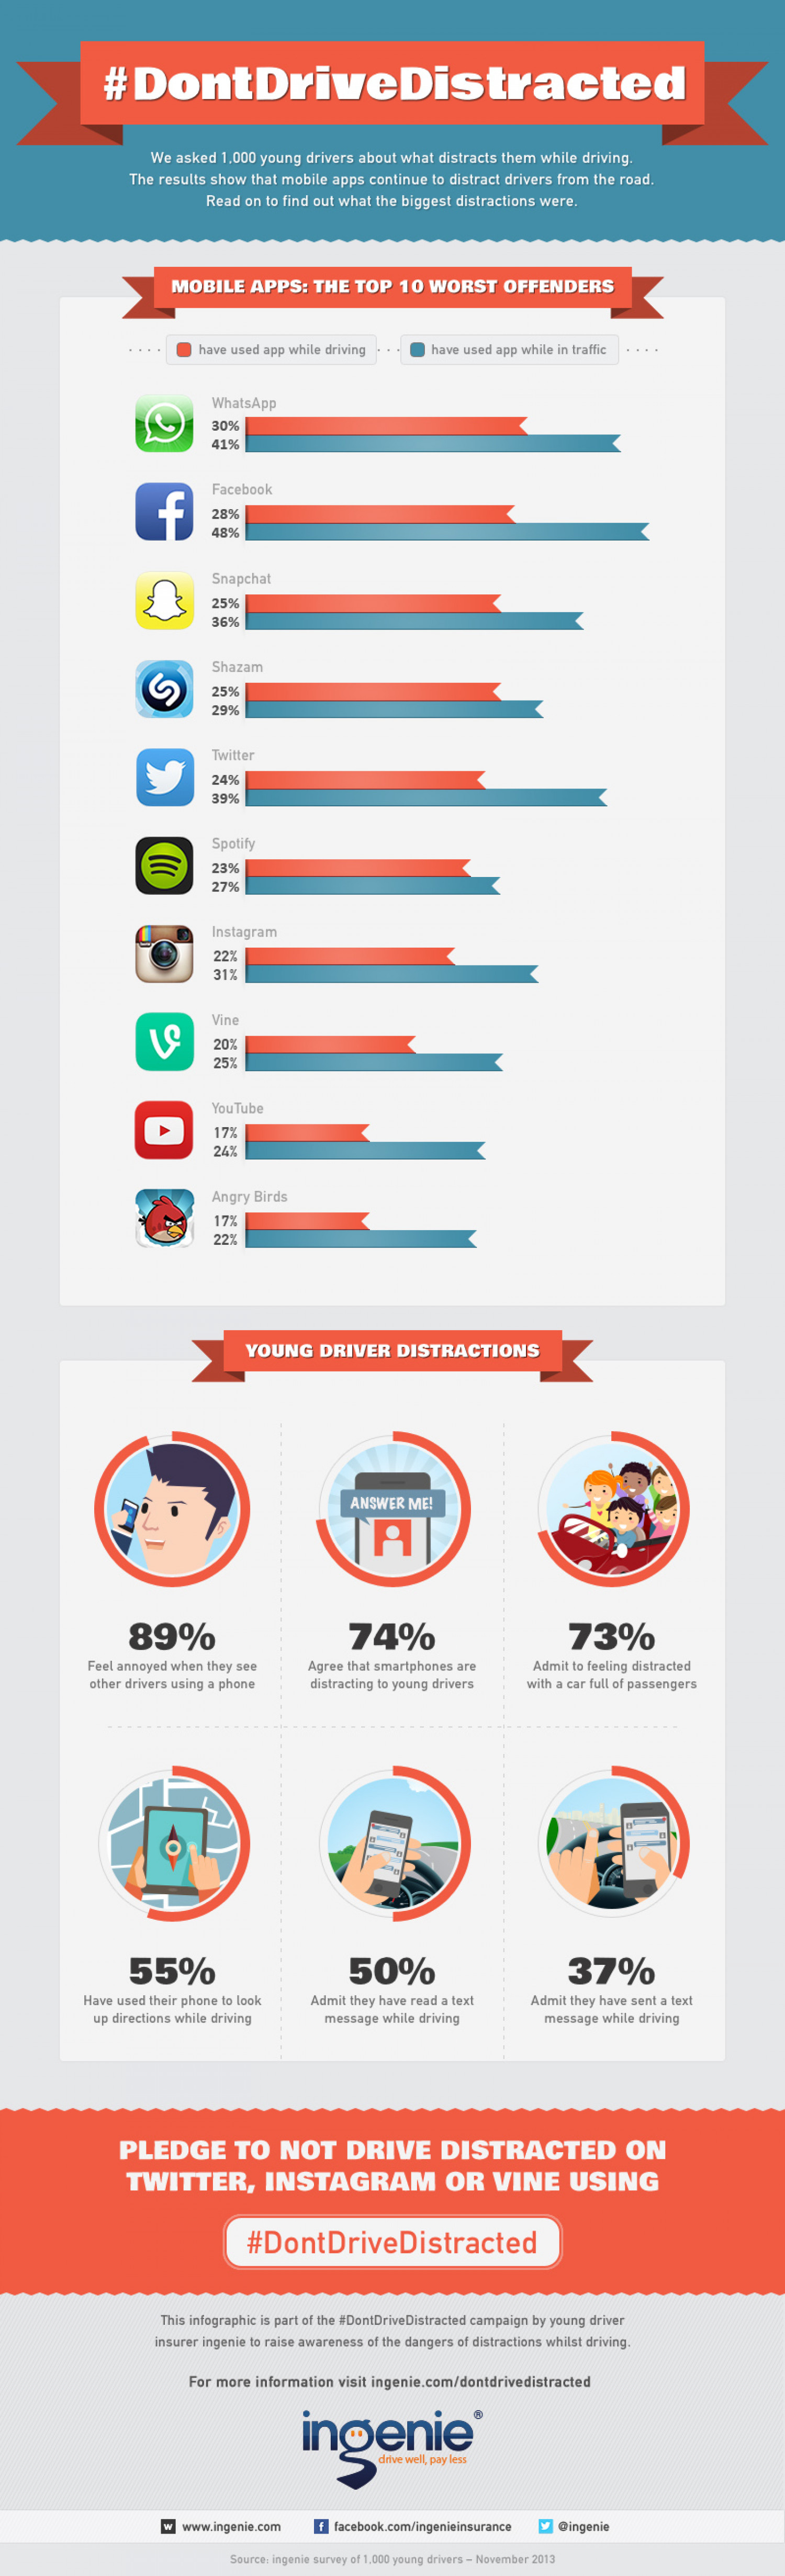 Top 10 Most Distracting Mobile Apps Infographic